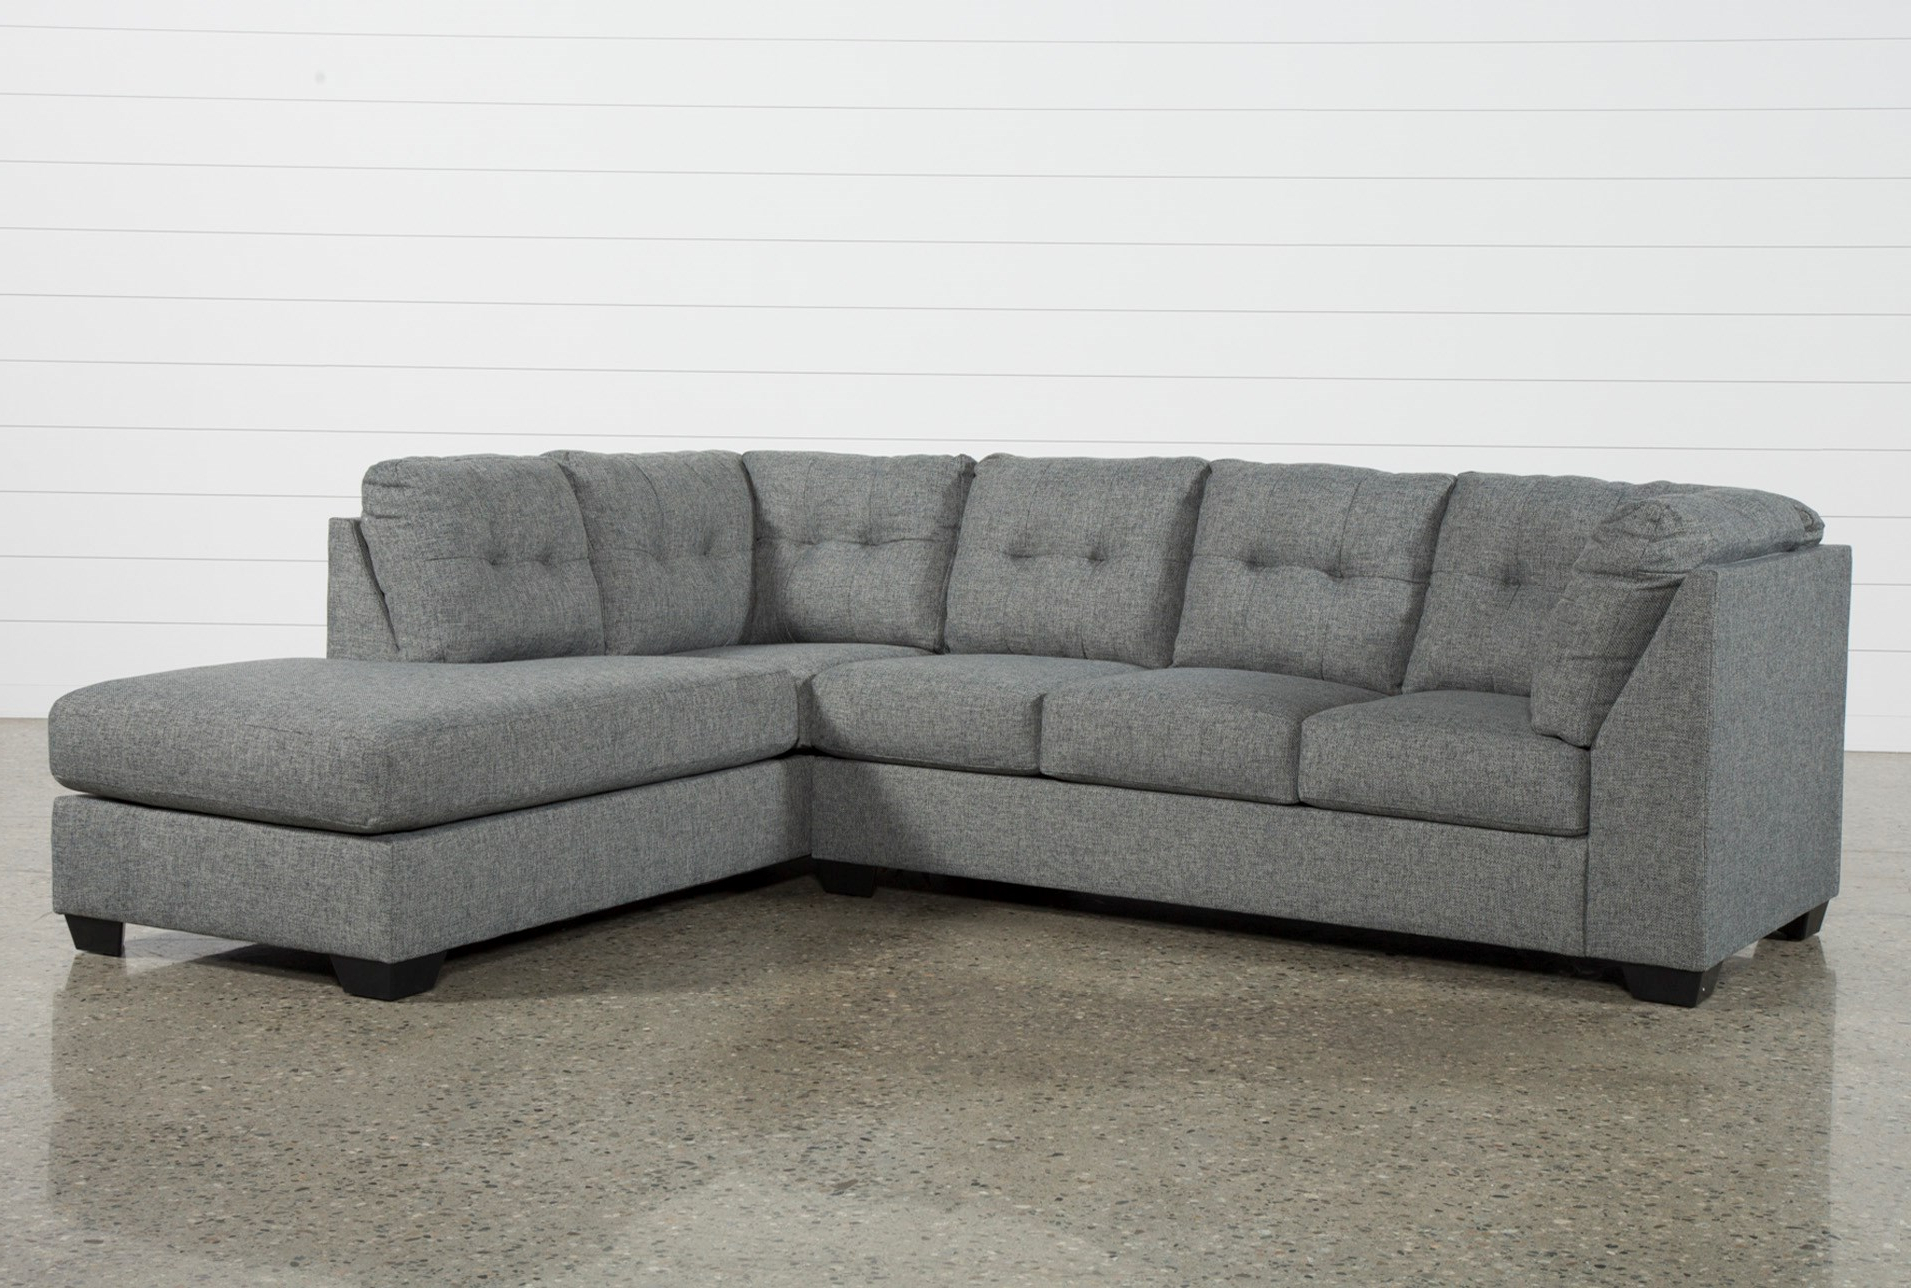 Most Current Lucy Grey 2 Piece Sleeper Sectionals With Laf Chaise Regarding Sleeper Sectional With Chaise – Tidex (View 8 of 20)